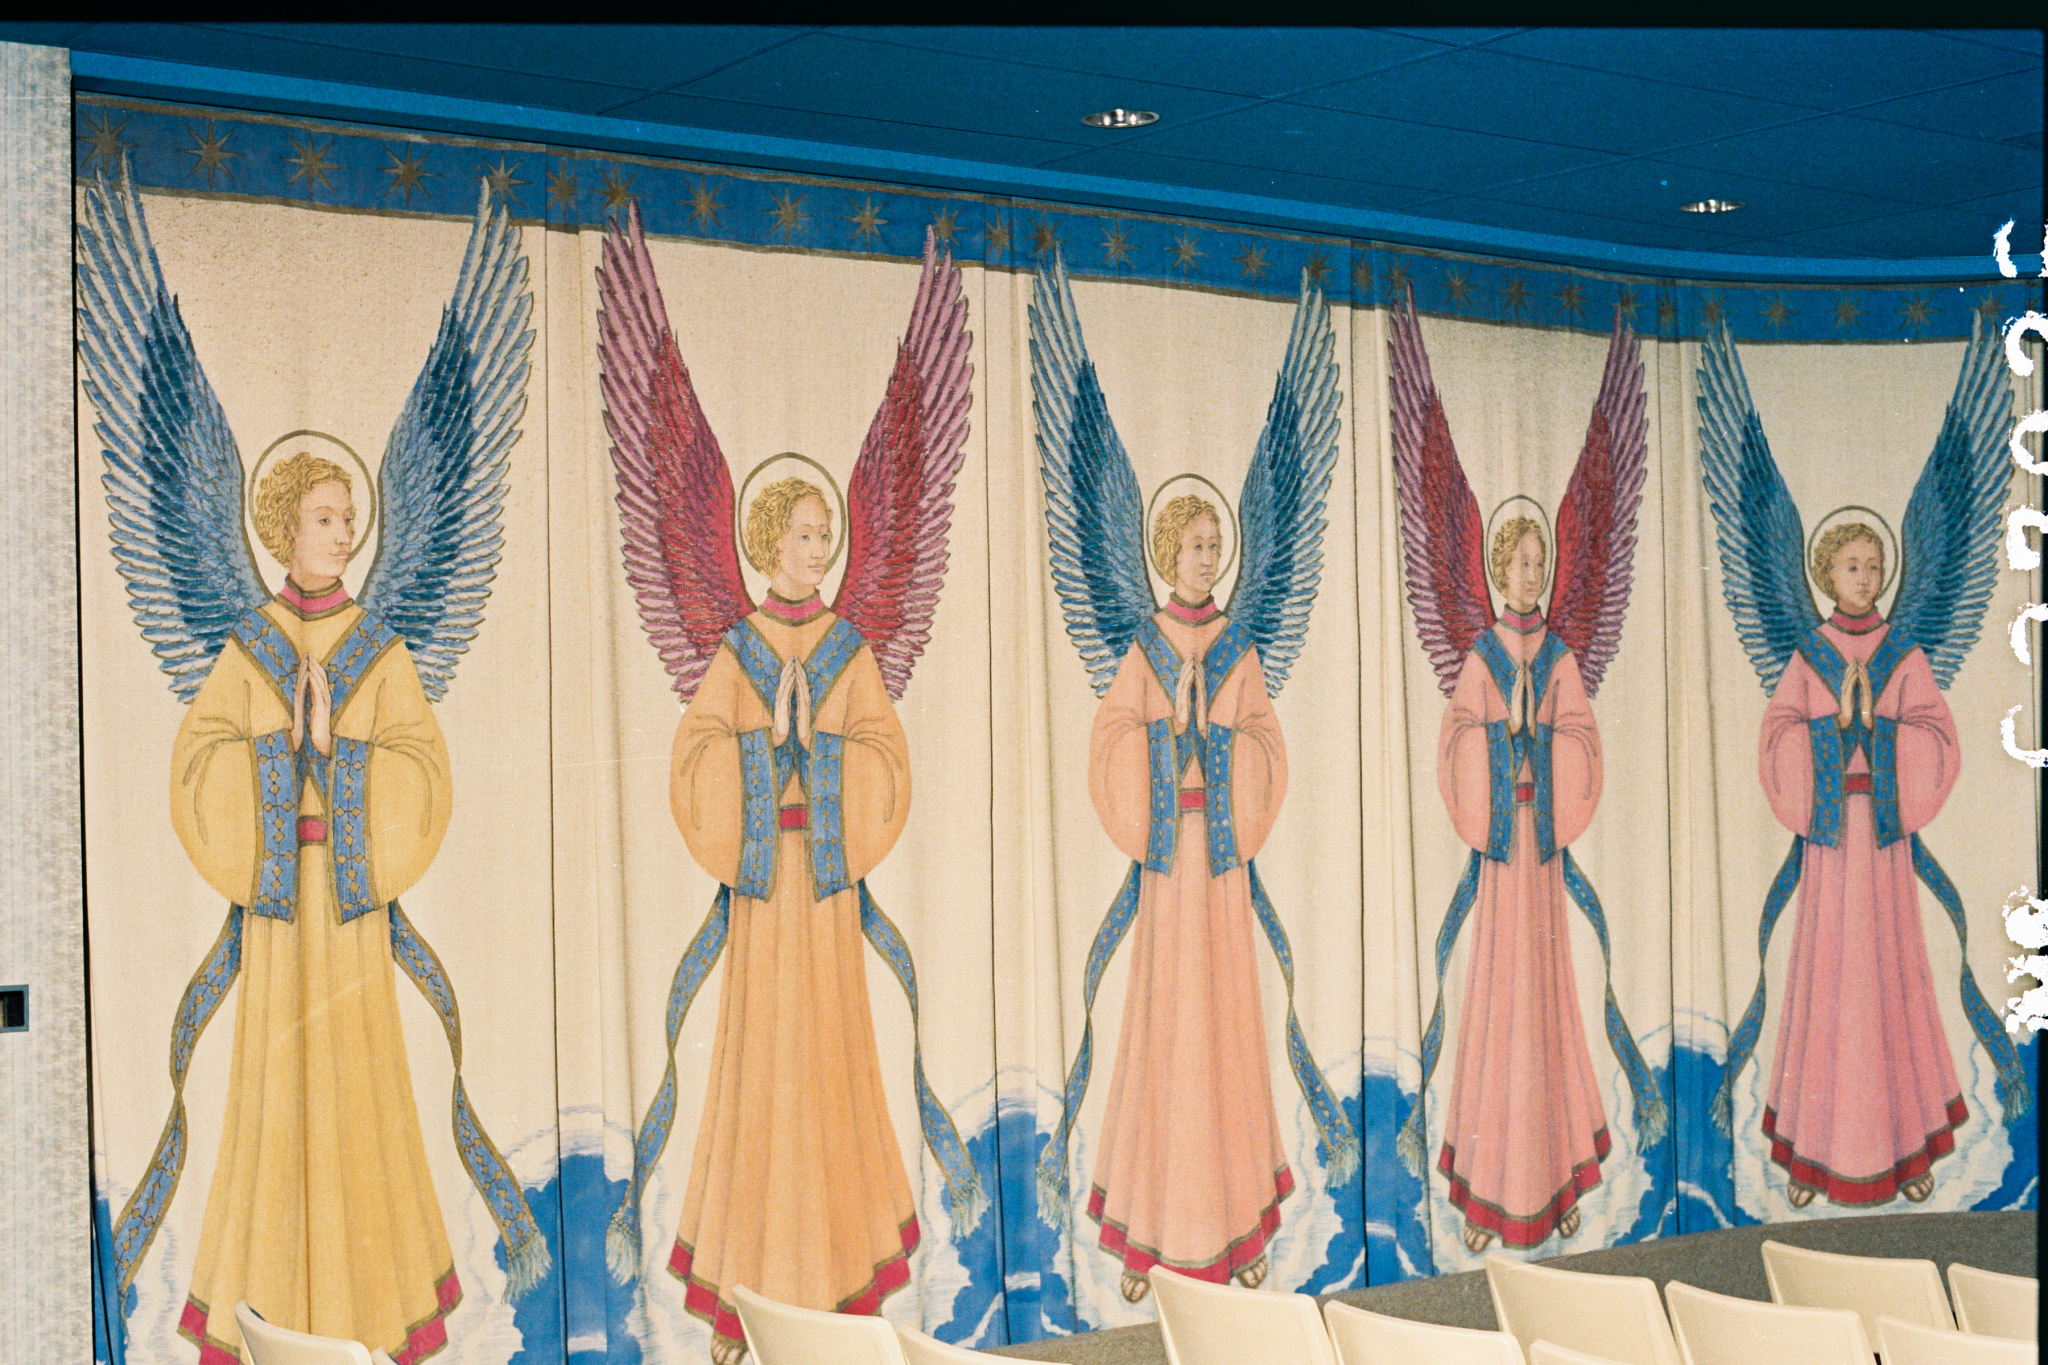 The former Grace Levinson Chapel curtains featured painted angels